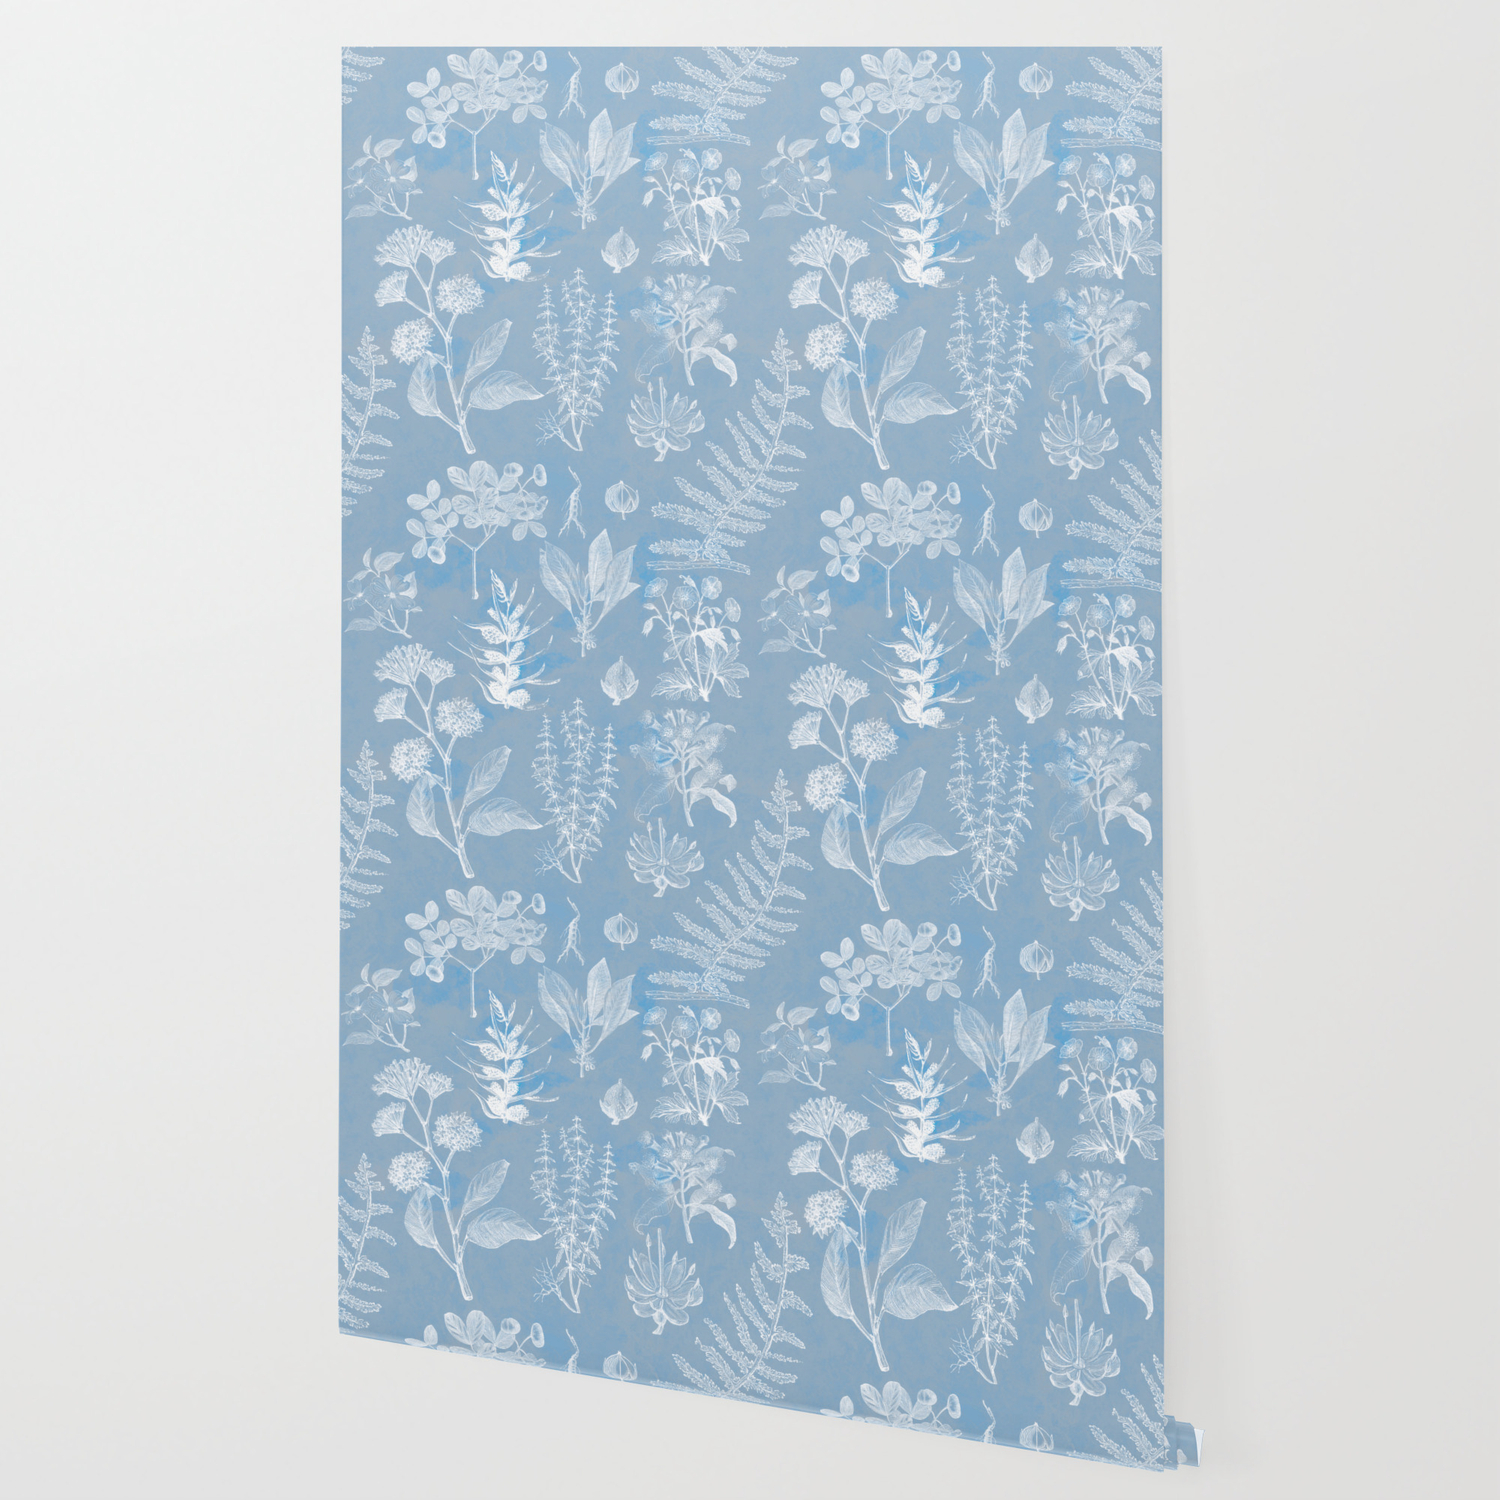 Baby Blue Vintage Floral Wallpaper By Themaxwells Society6